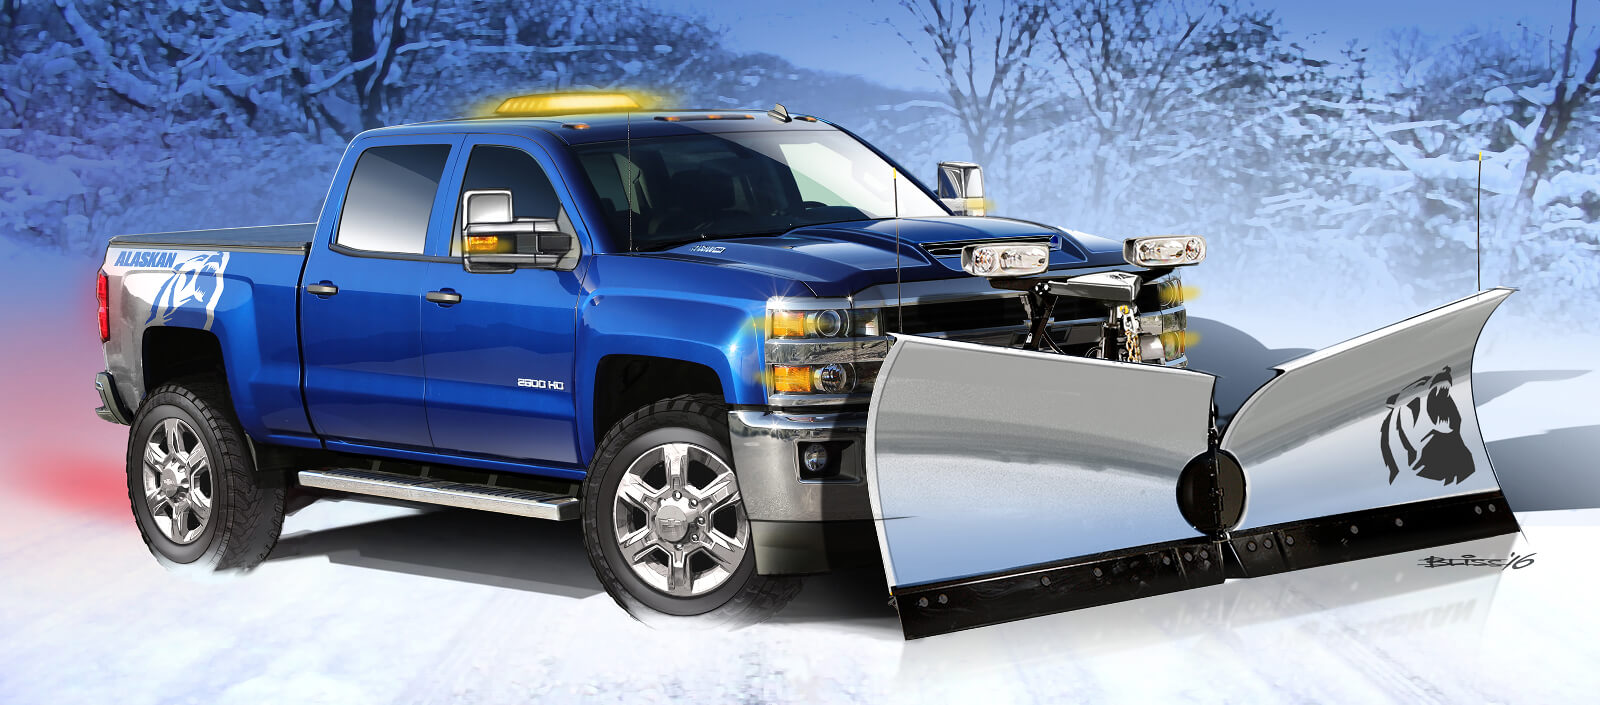 hight resolution of chevrolet silverado hd alaskan edition